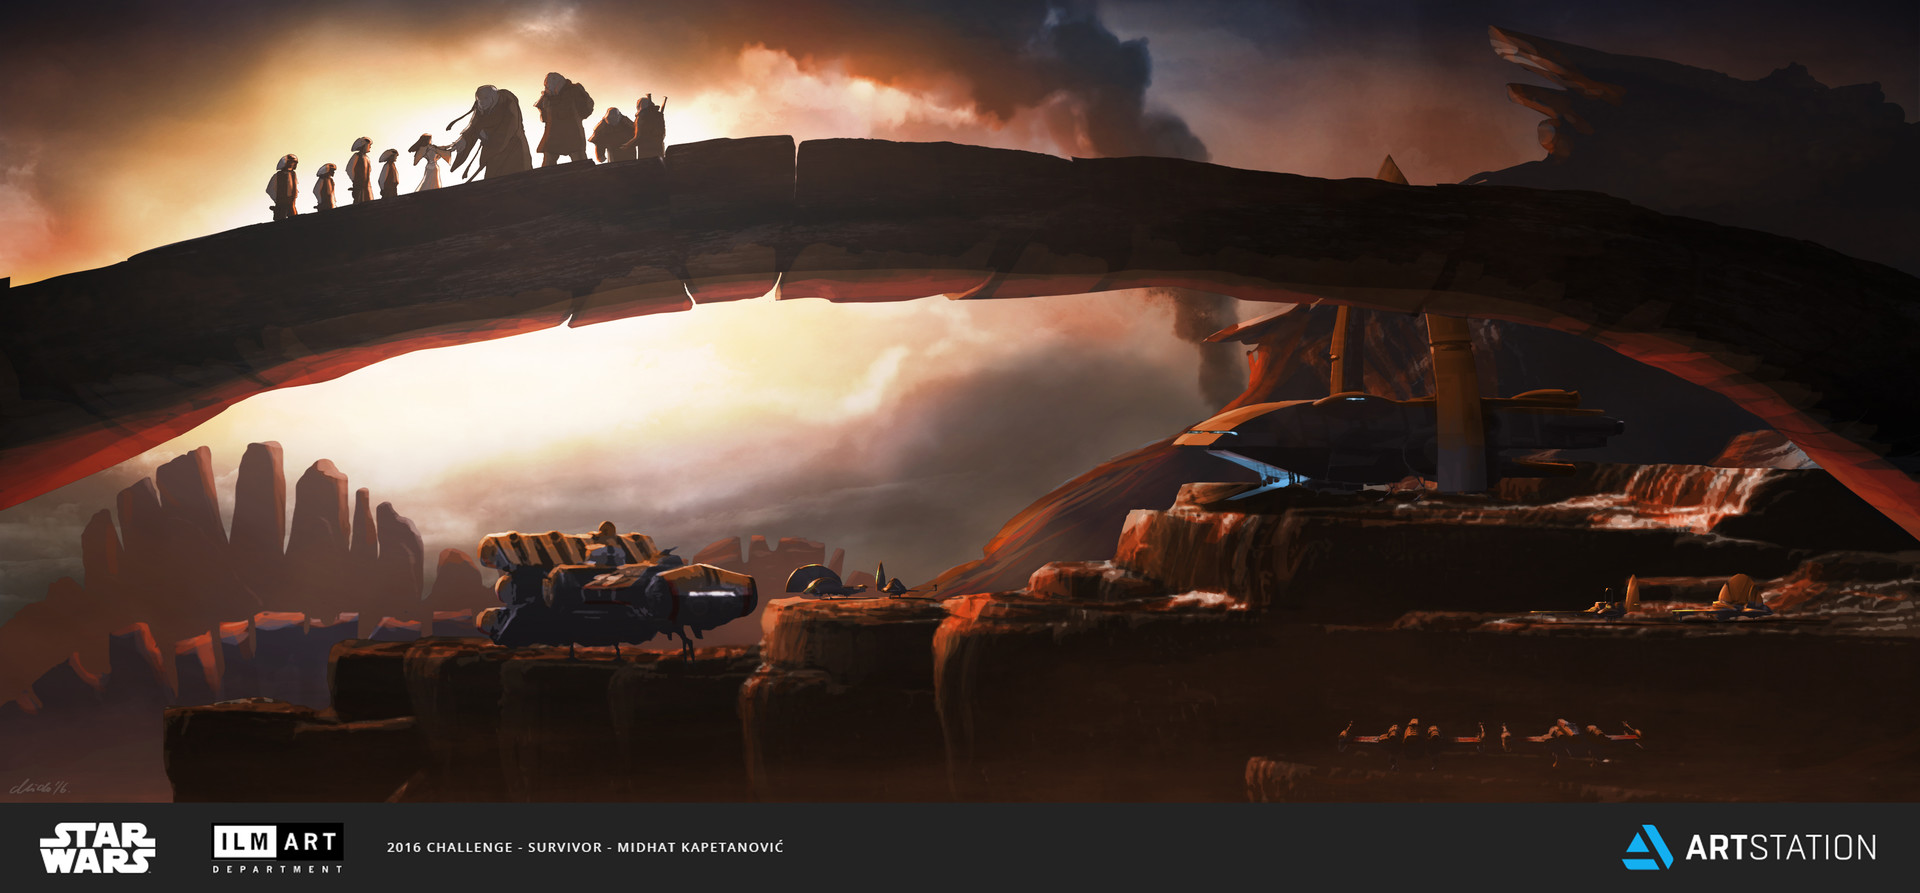 Midhat kapetanovic asilmc job keyframe03 02 danji join the rebellion volcano planet